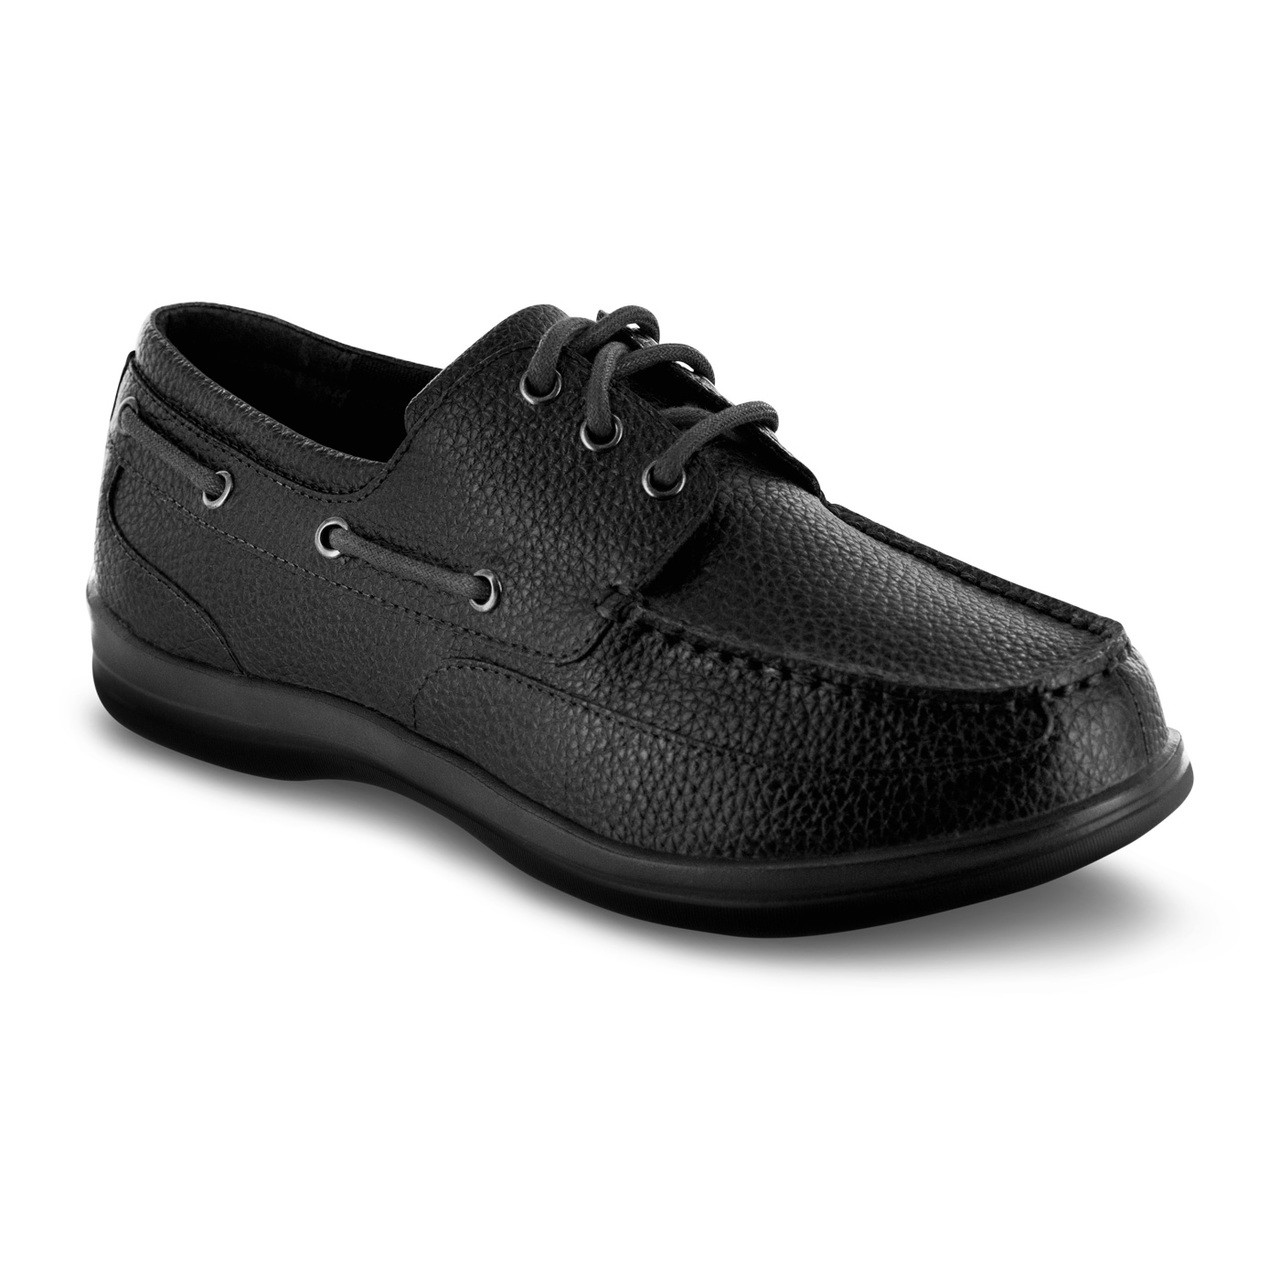 6b94407a594 Apex Classic Lace Boat Shoe (A1000M) qualifies for A5500.